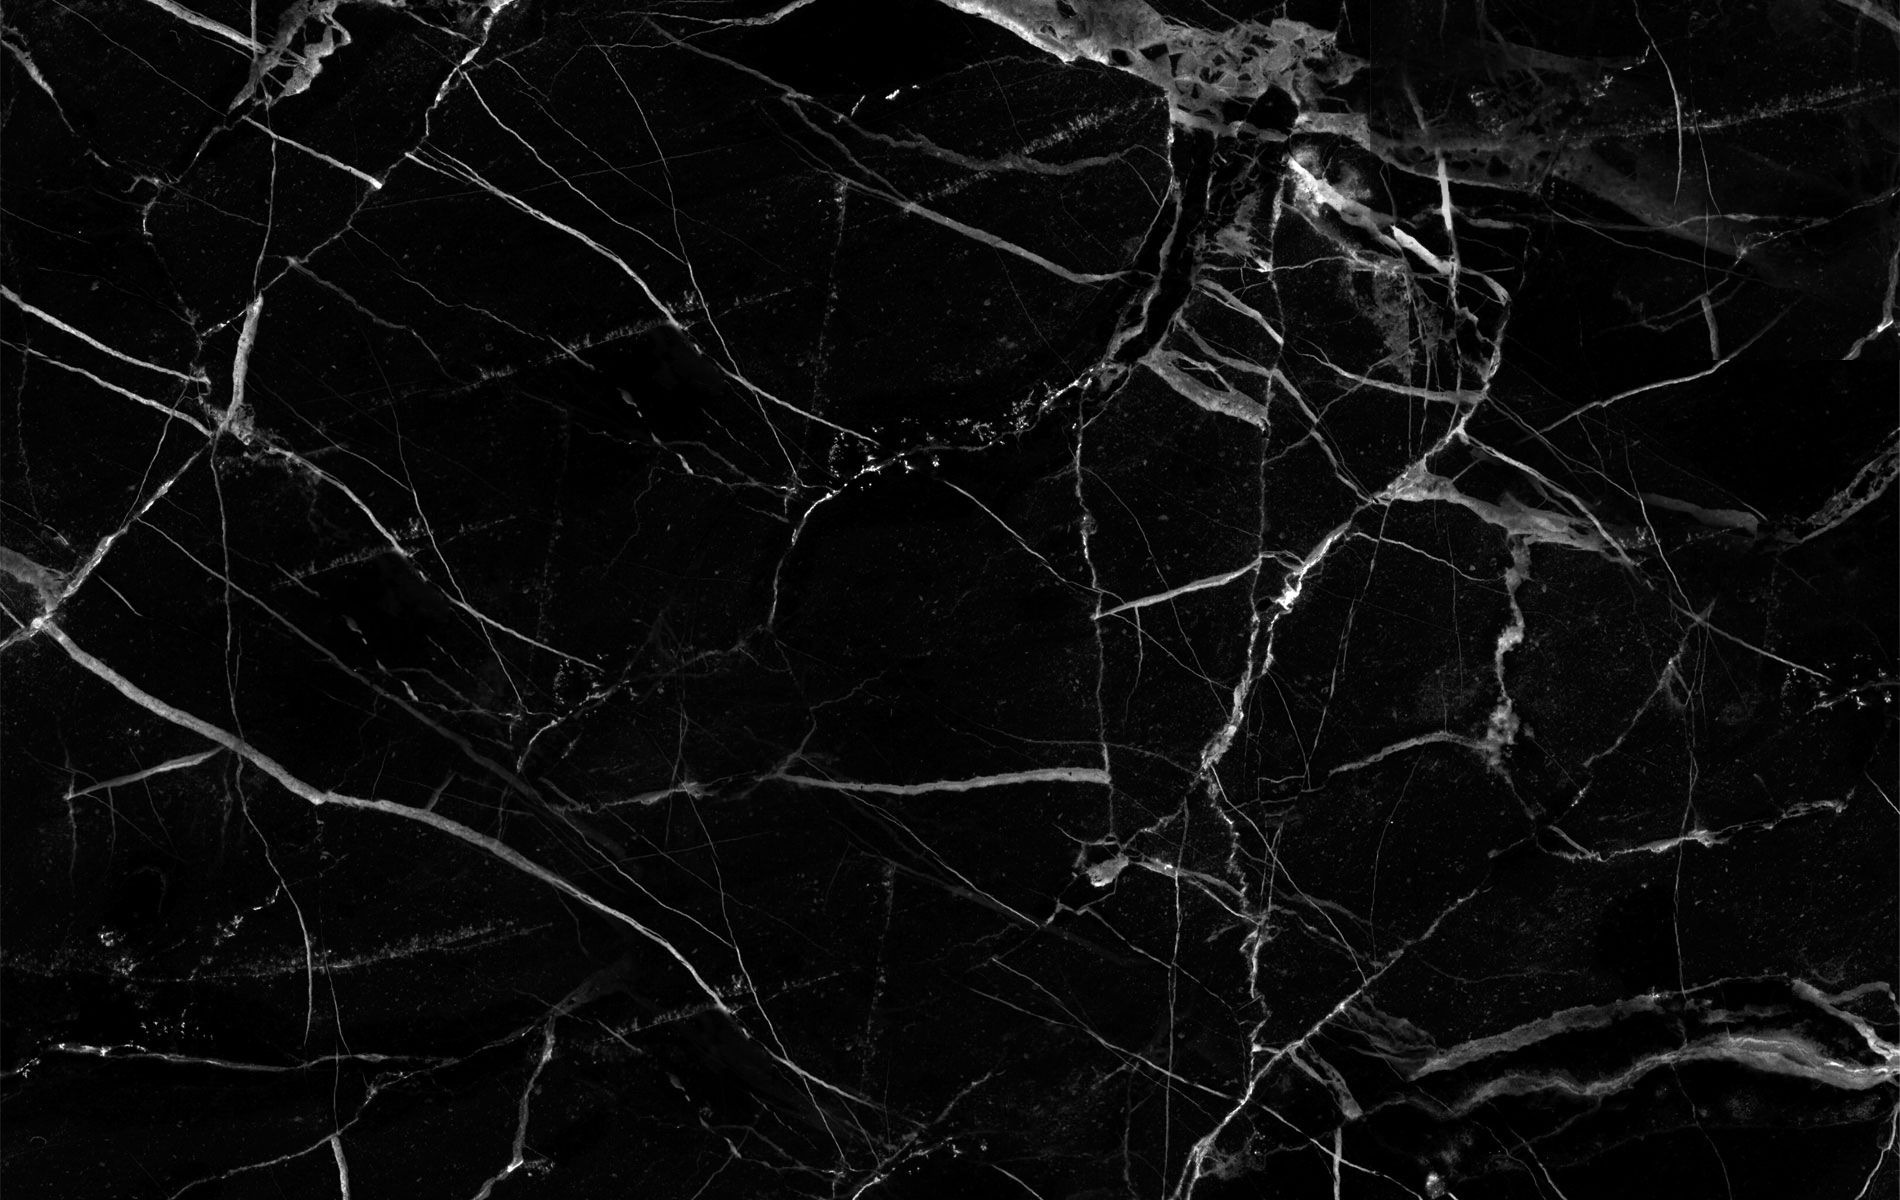 Download Black Marble Wallpapers Android 1900x1200 px 740 1900x1200